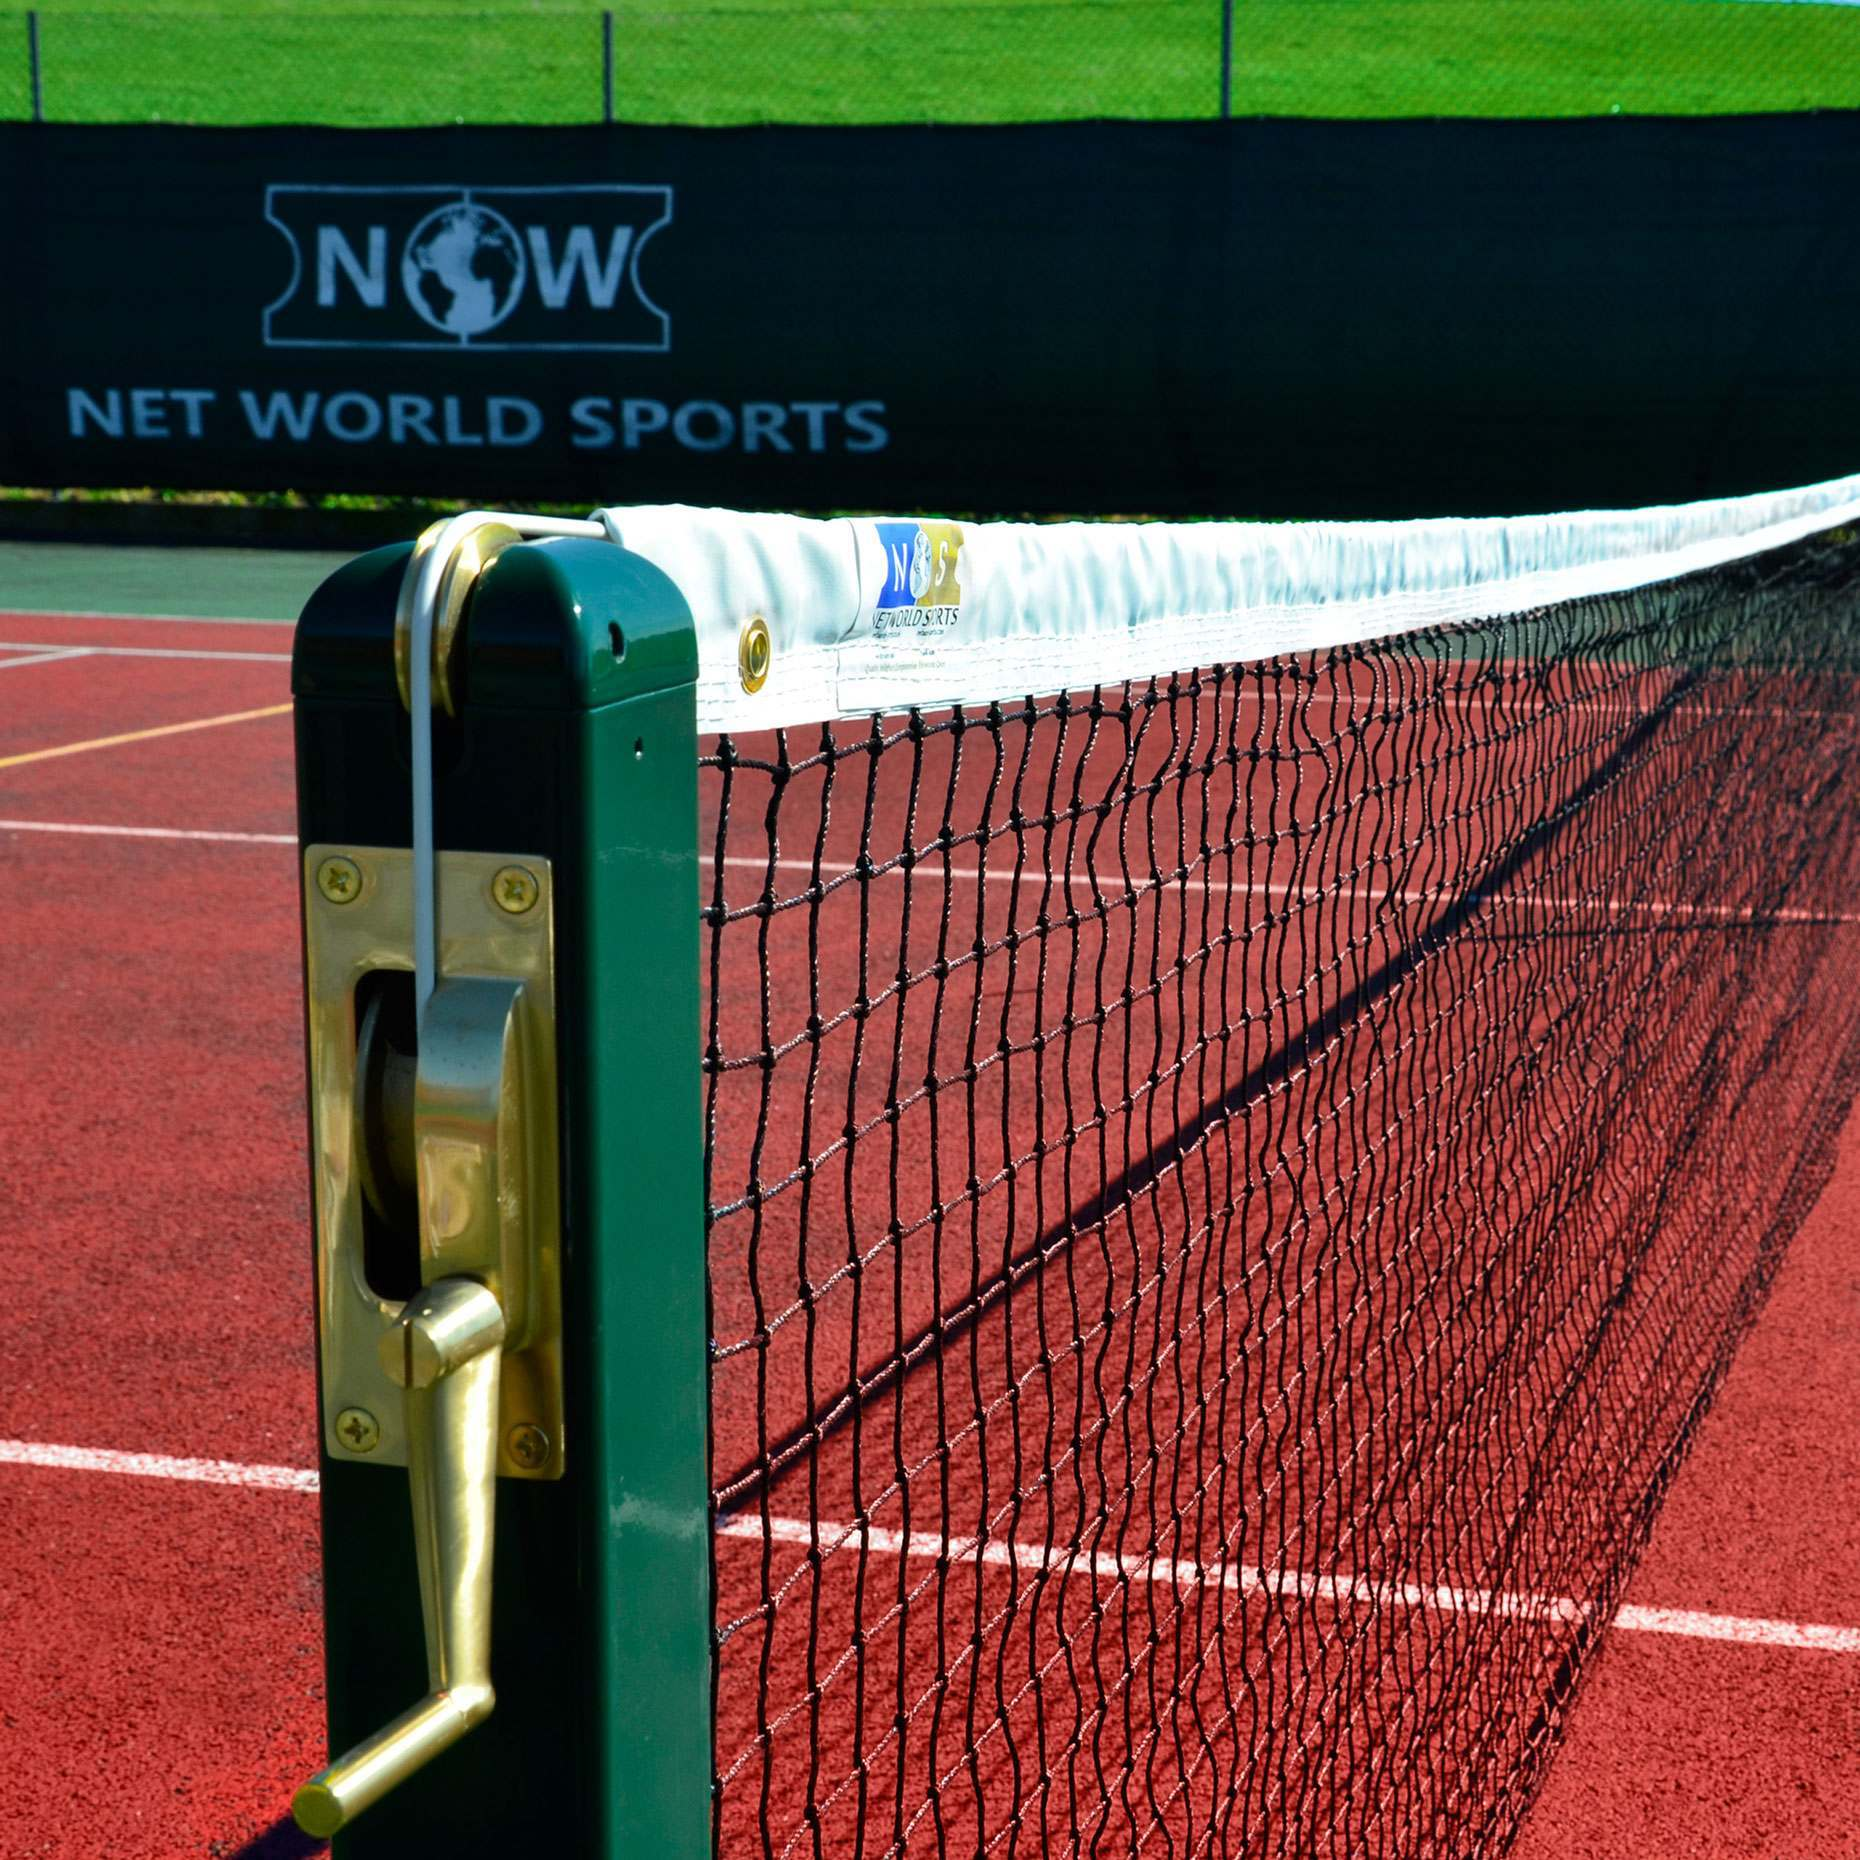 2.5mm Tennis Net - compatible with all tennis posts